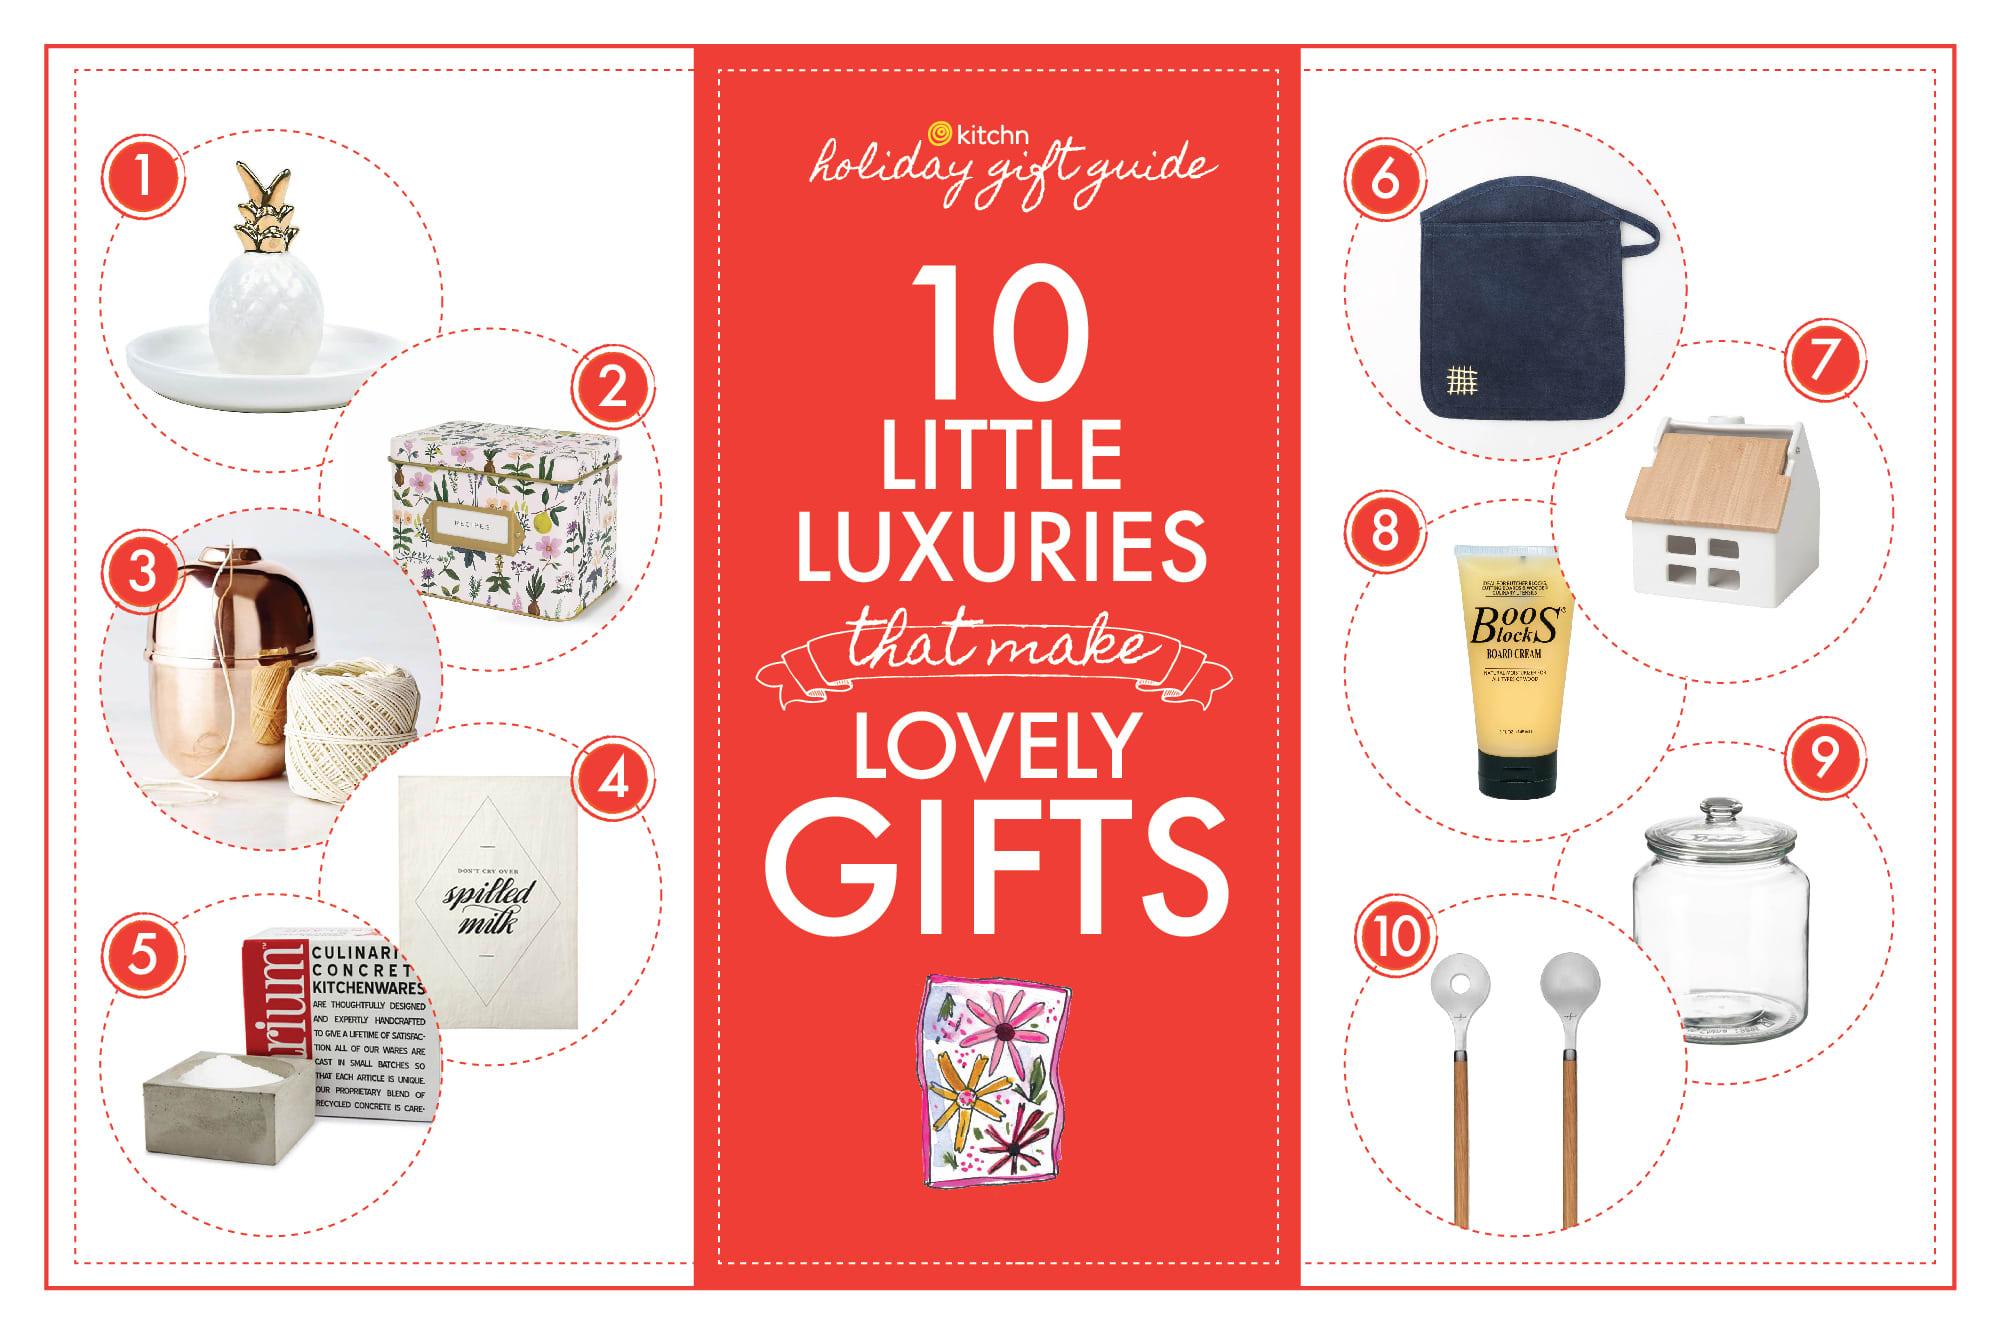 10 Little Luxuries That Make Lovely Gifts: gallery image 1